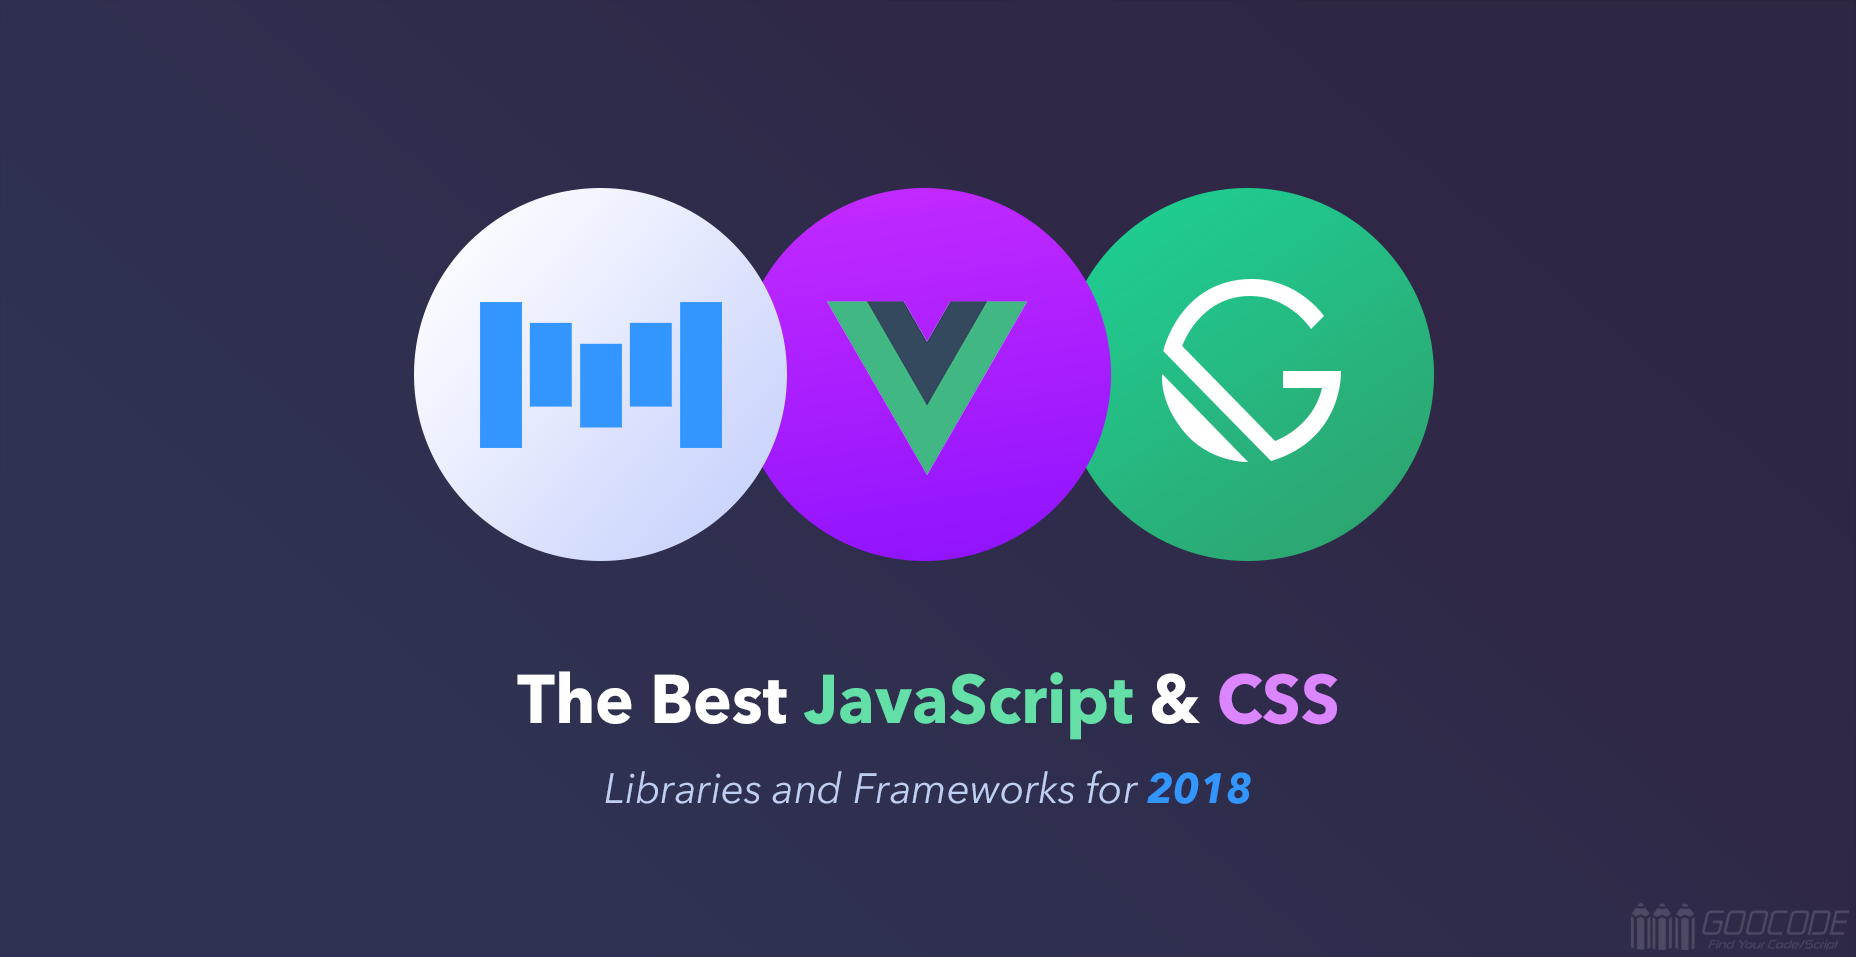 Part 2: 10 interesting Javascript and CSS libraries